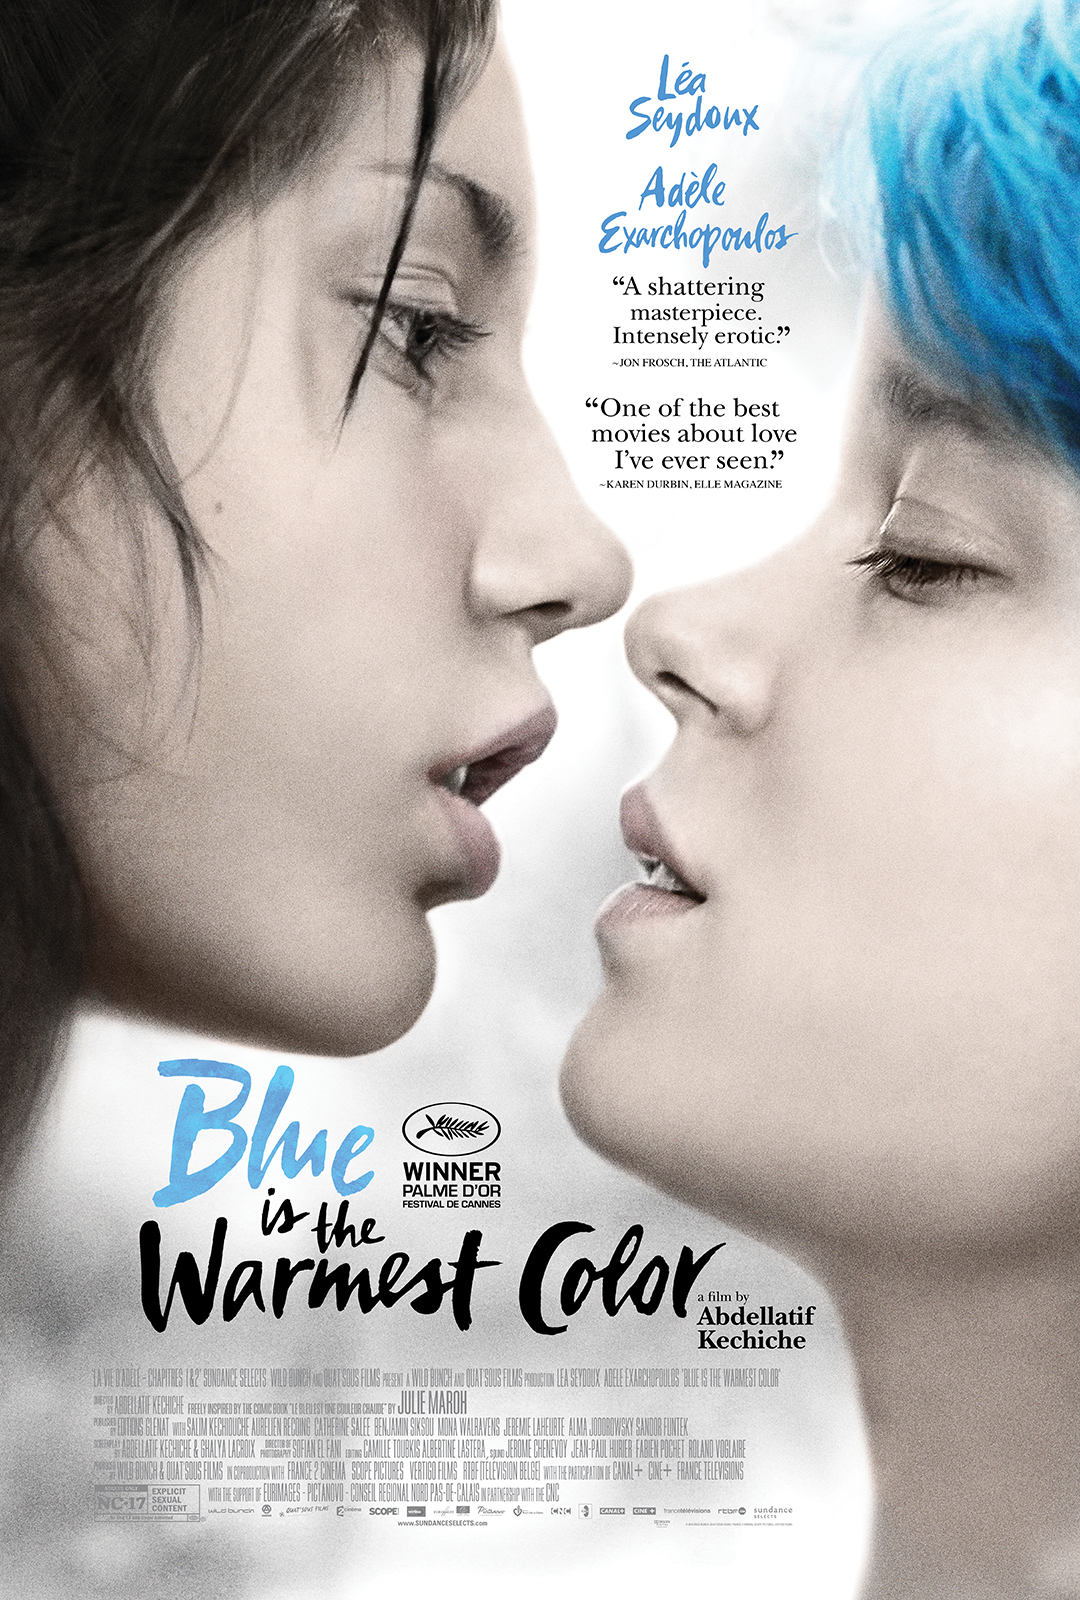 ŽYDRA SPALVA – ŠILČIAUSIA (2013) / BLUE IS THE WARMEST COLOR